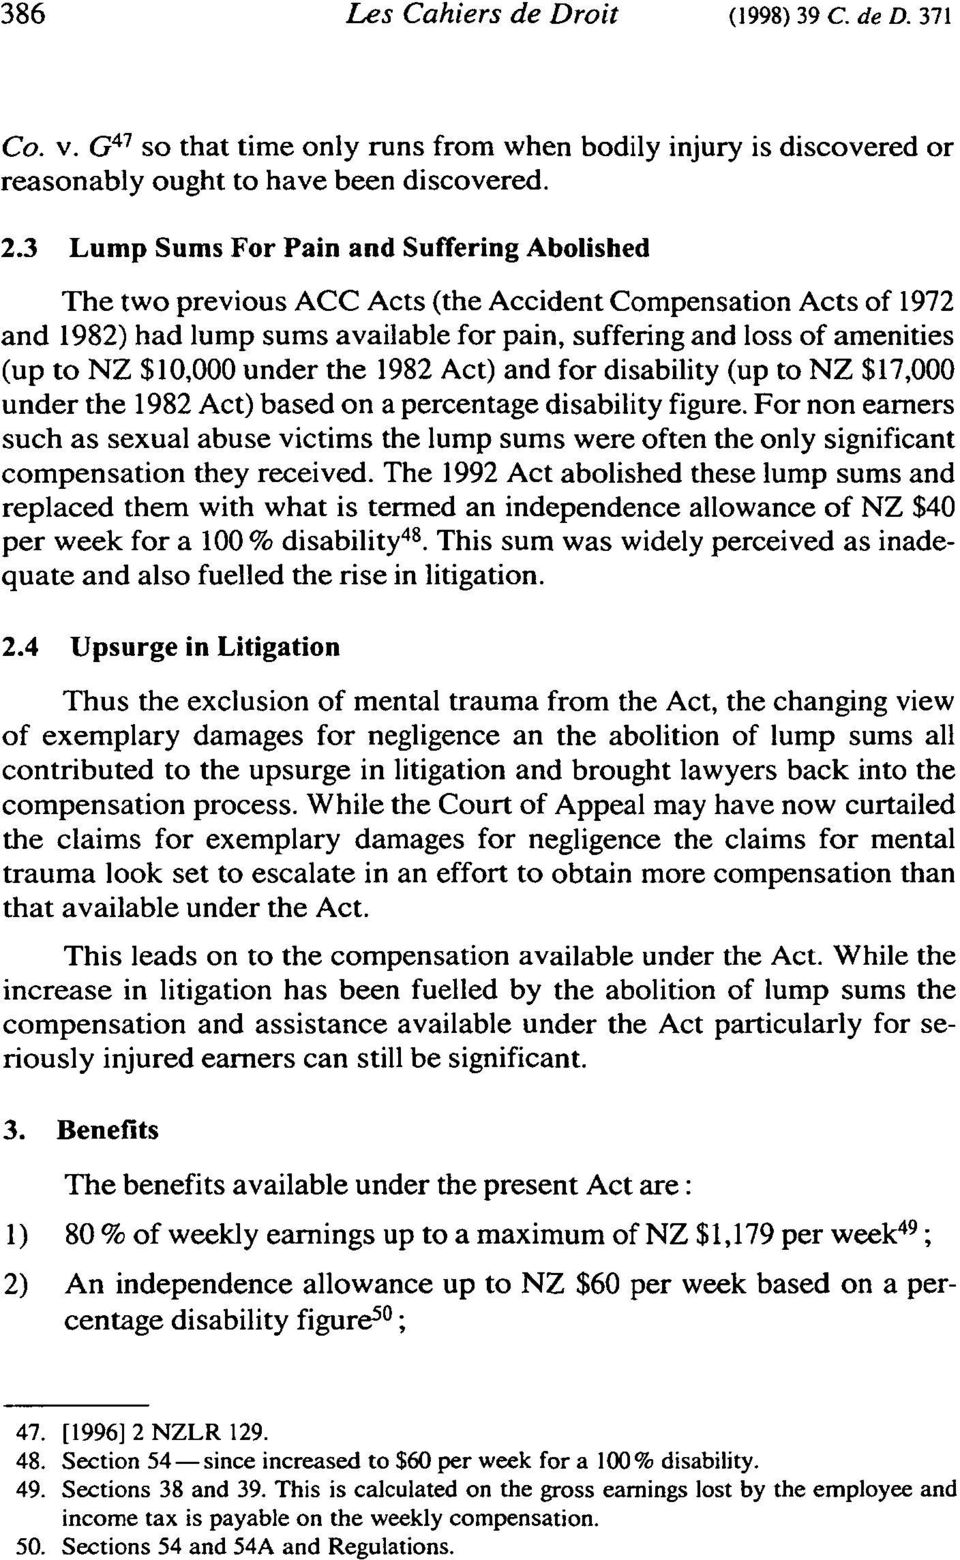 $10,000 under the 1982 Act) and for disability (up to NZ $17,000 under the 1982 Act) based on a percentage disability figure.